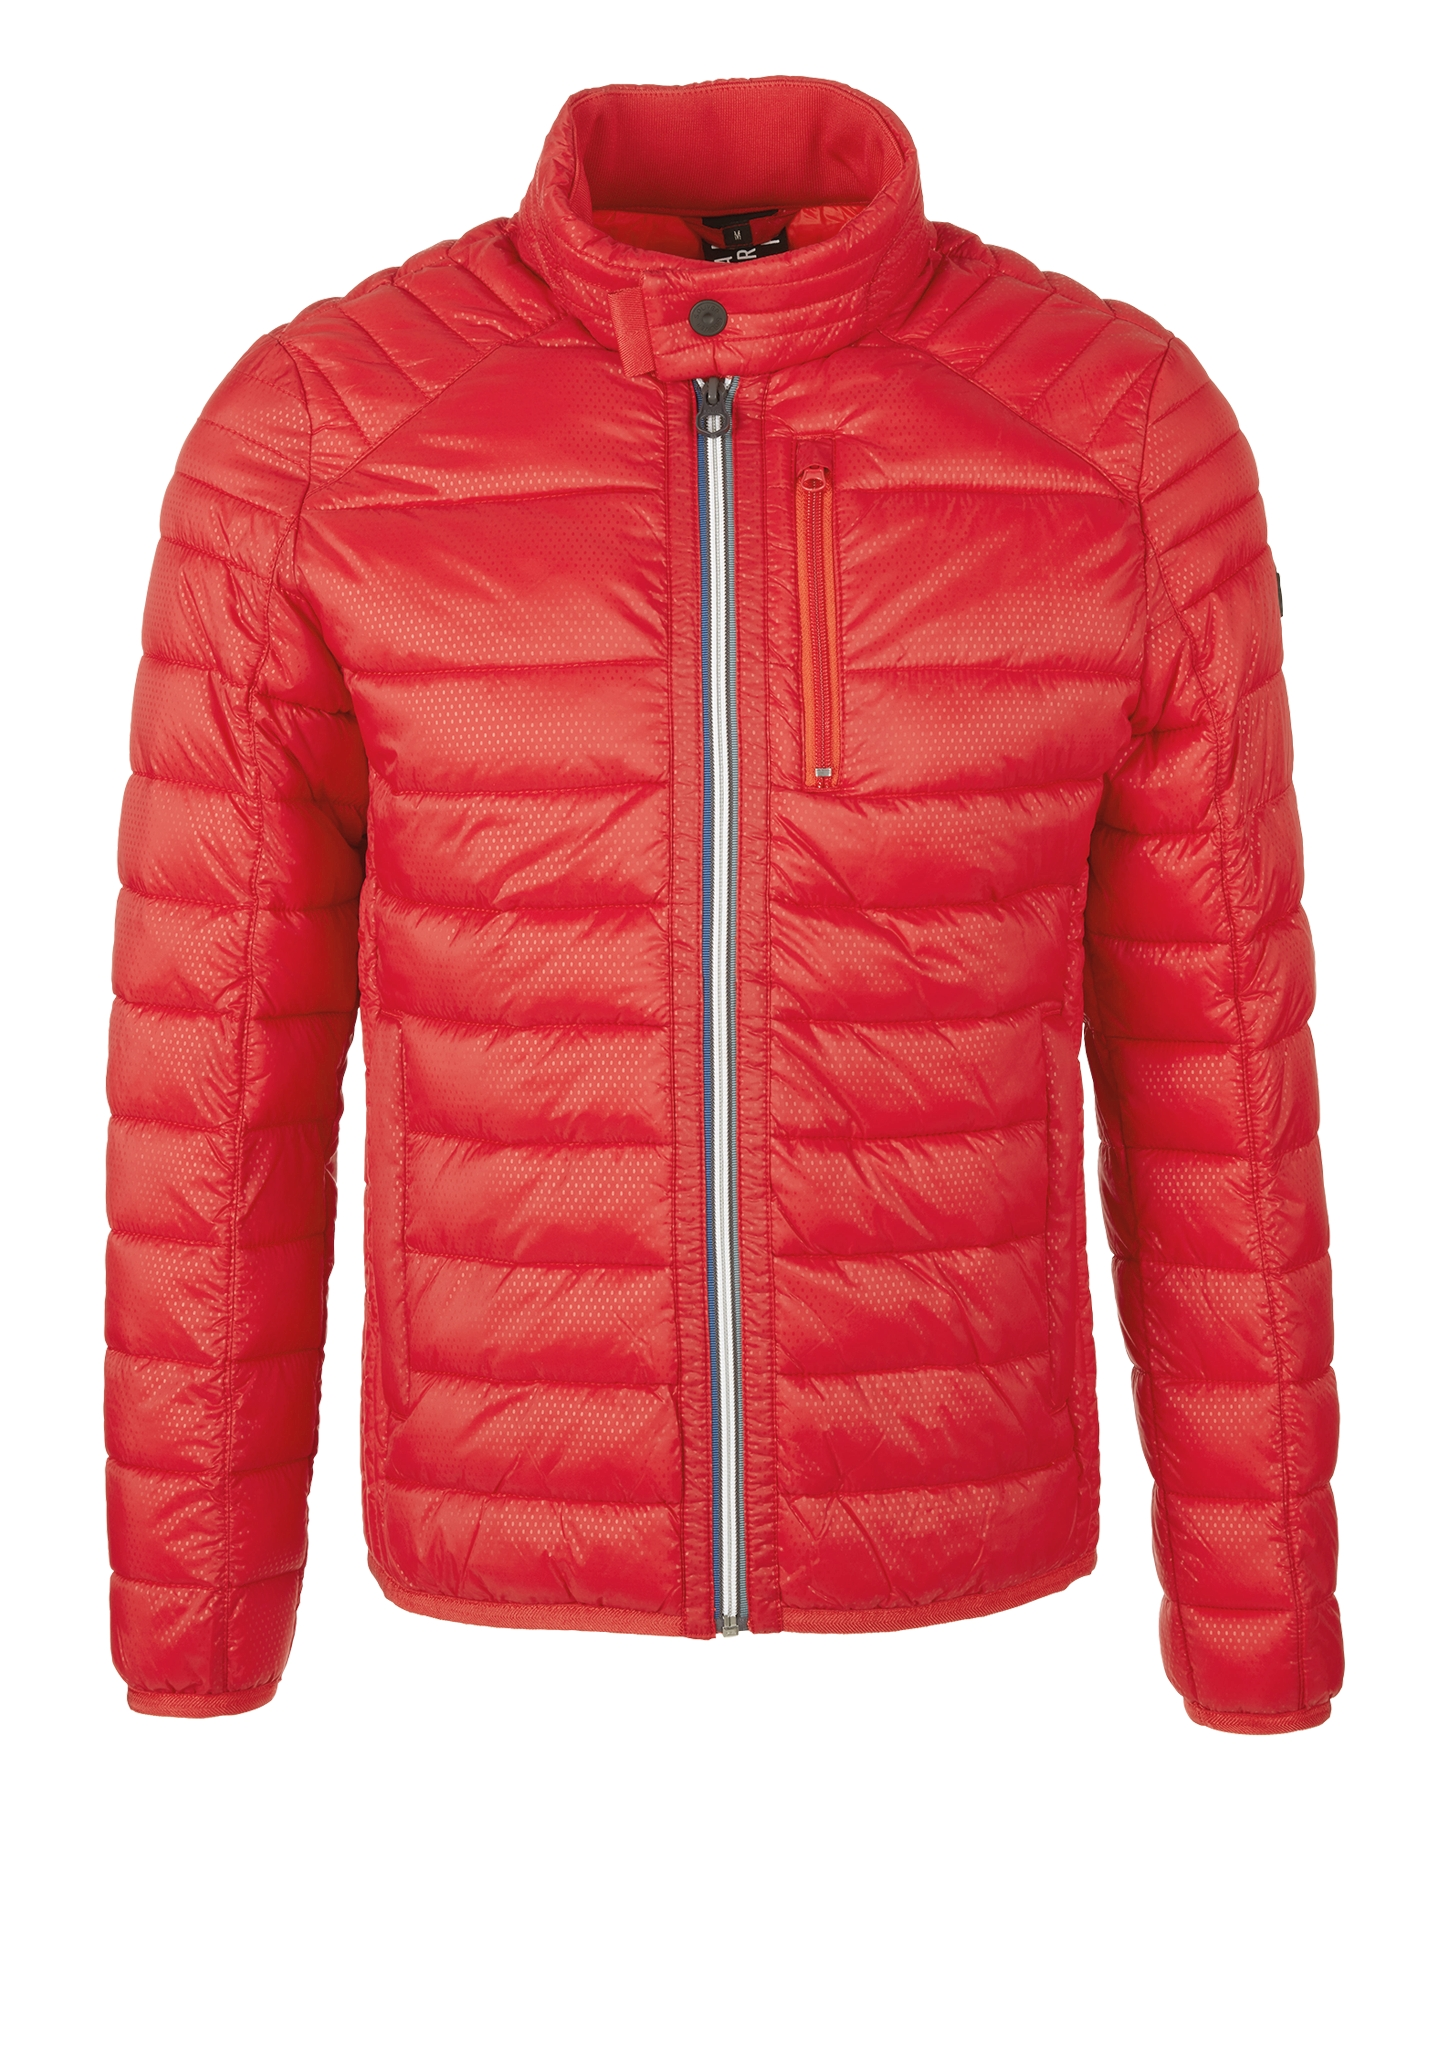 Outdoorjacke | Sportbekleidung | Rot | Oberstoff: 100% polyamid| kragen: 97% polyester -  3% elasthan| futter: 100% polyamid| füllmaterial: 100% polyester | s.Oliver